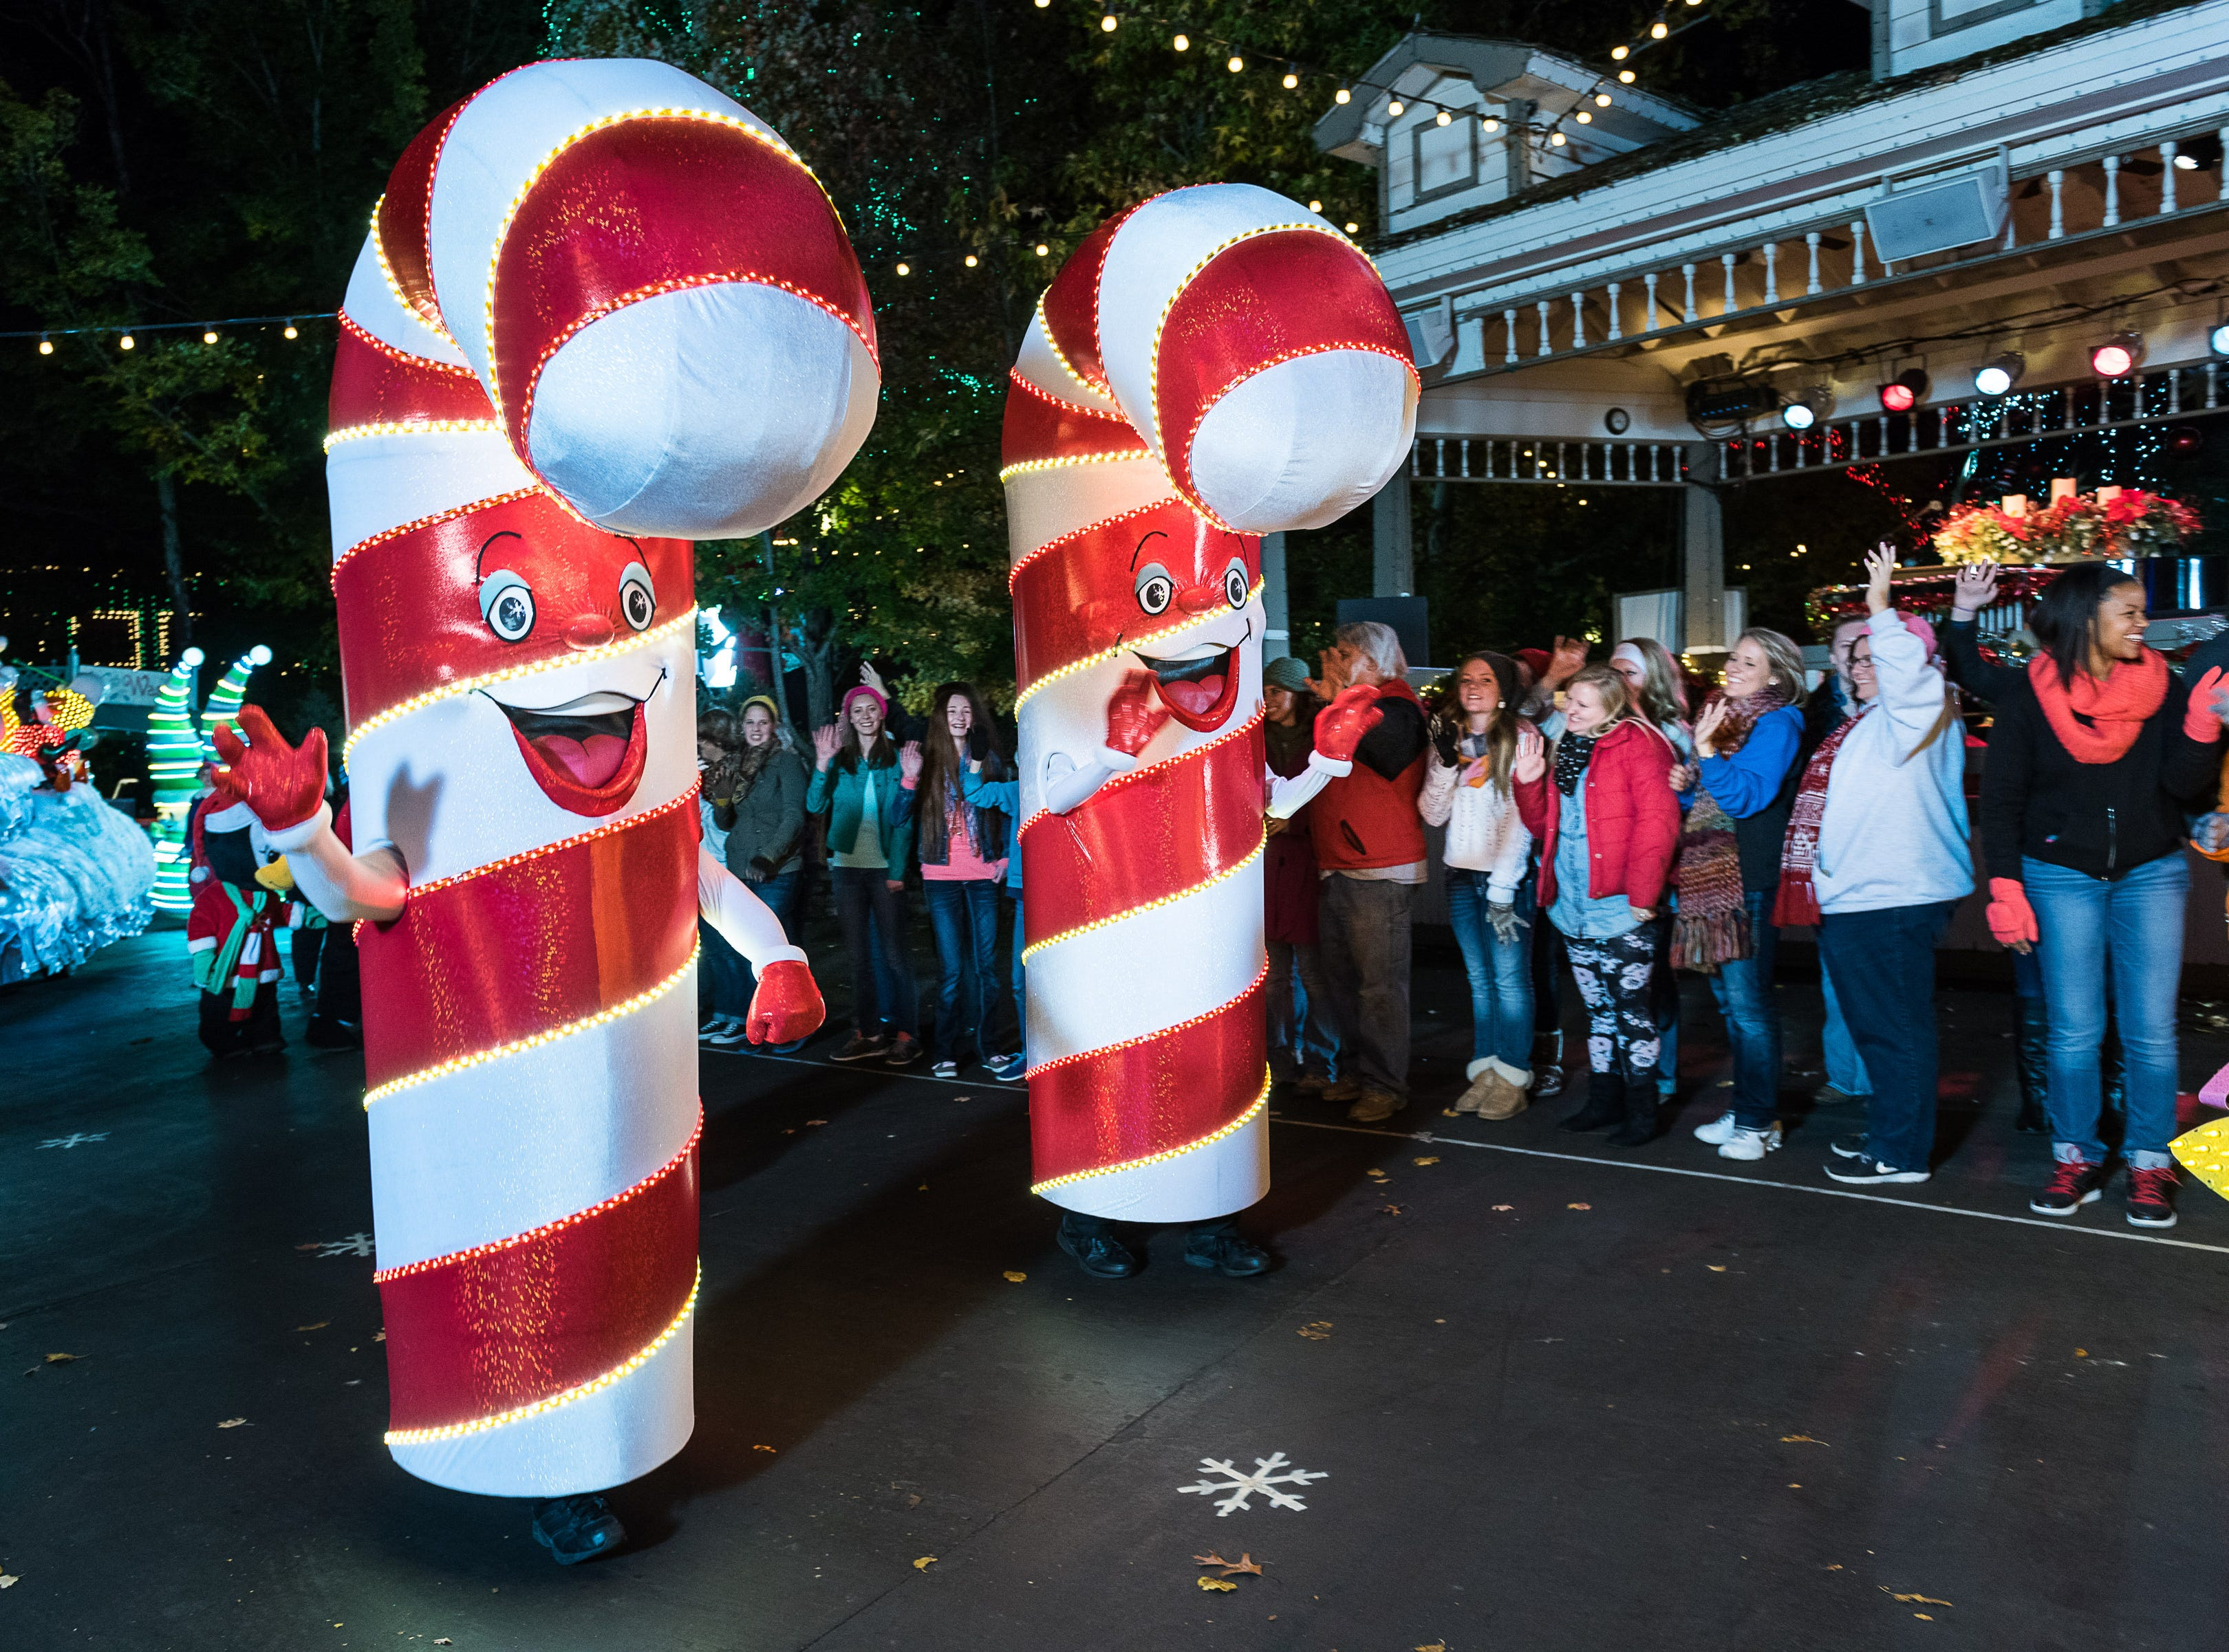 Rudolph's Holly Jolly Christmas Light Parade is accompanied by 45 colorful costumed characters, including these 10-foot candy canes.